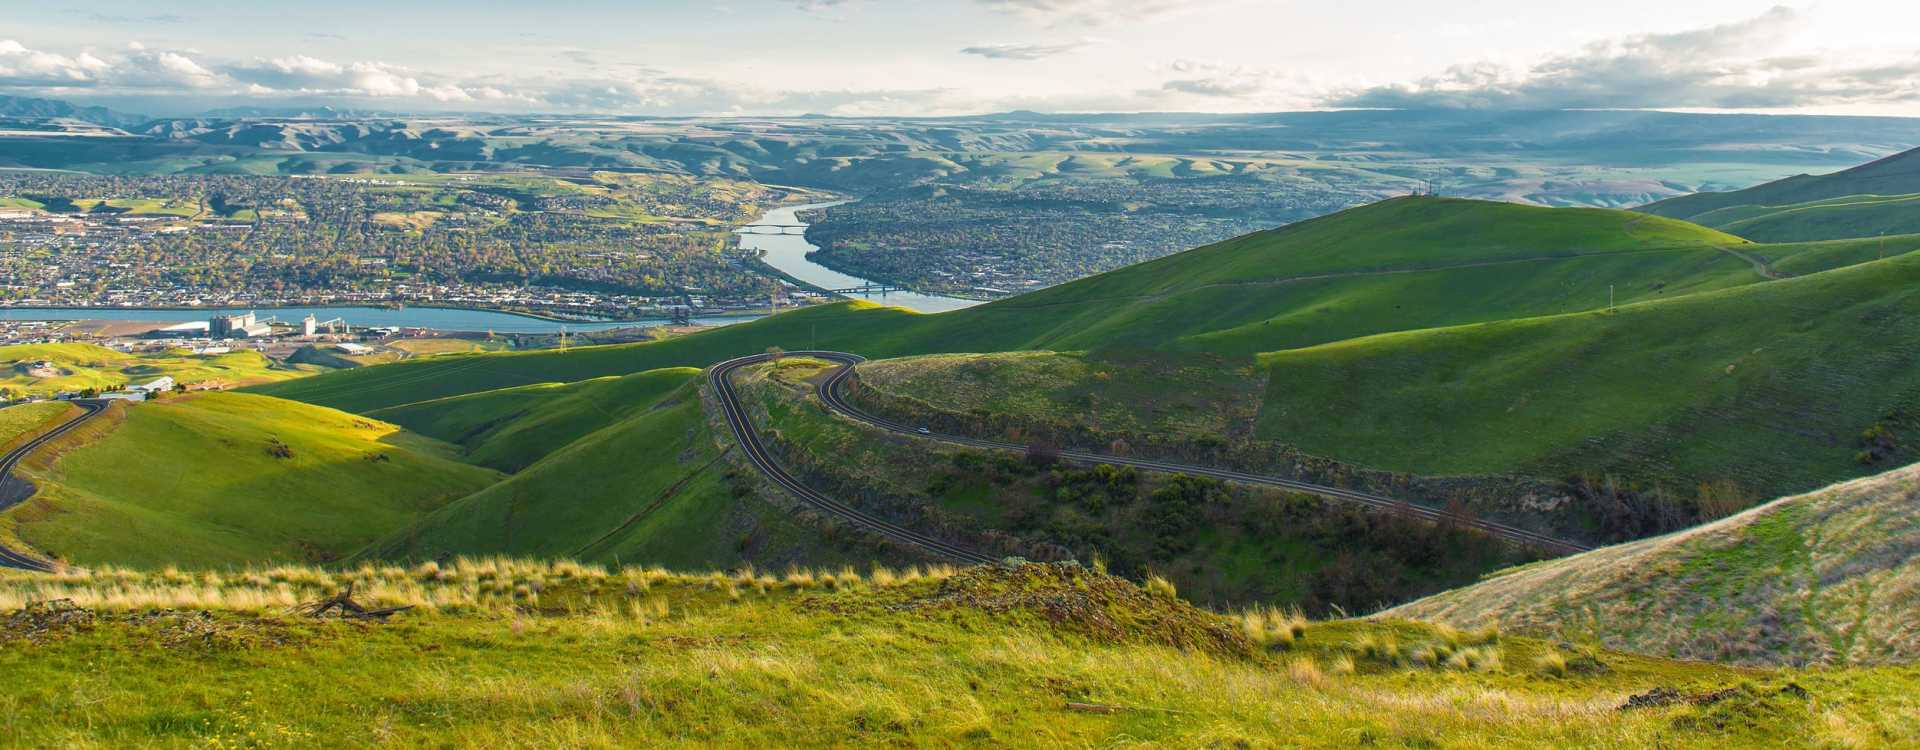 Visit Lewis Clark Valley